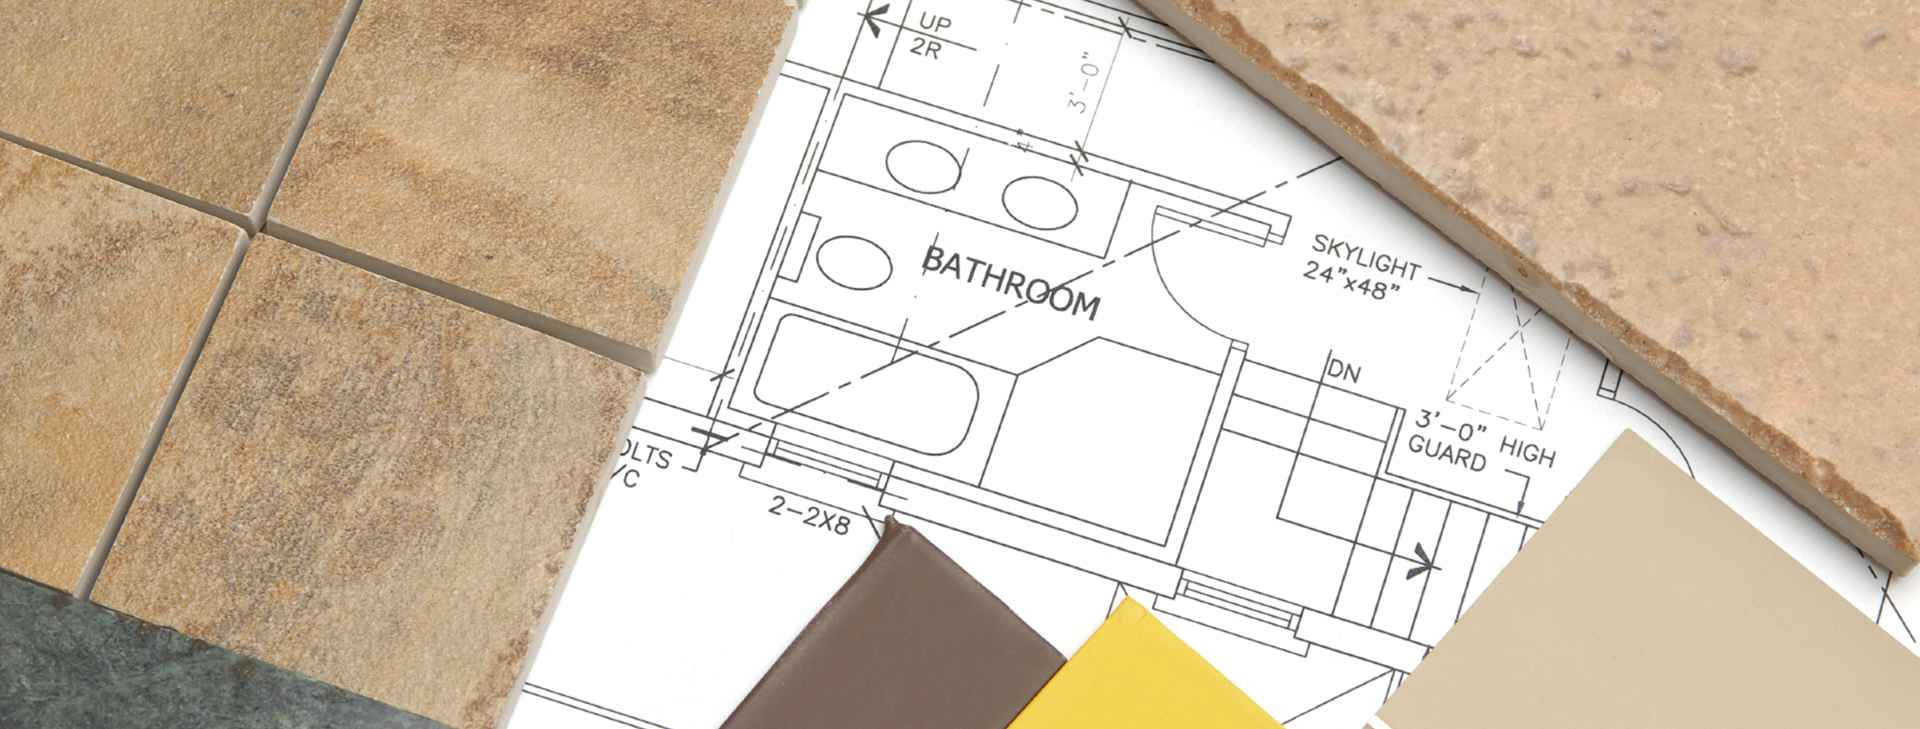 Bathroom plans iStock_000008508543 - cropped